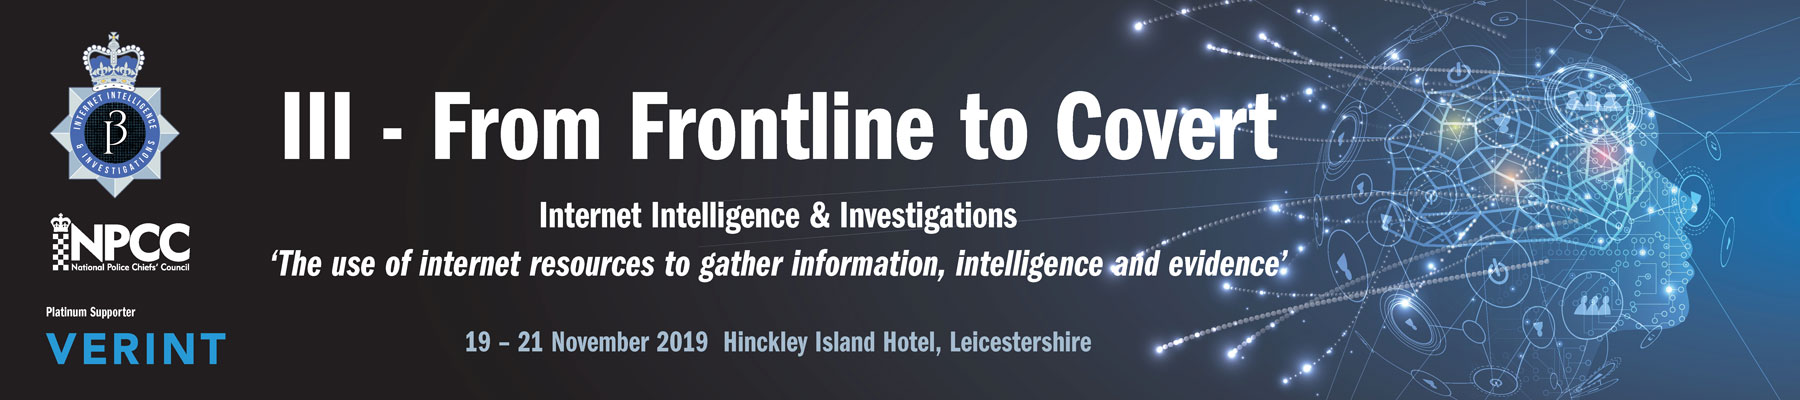 Internet Intelligence and Investigations Conference 2019